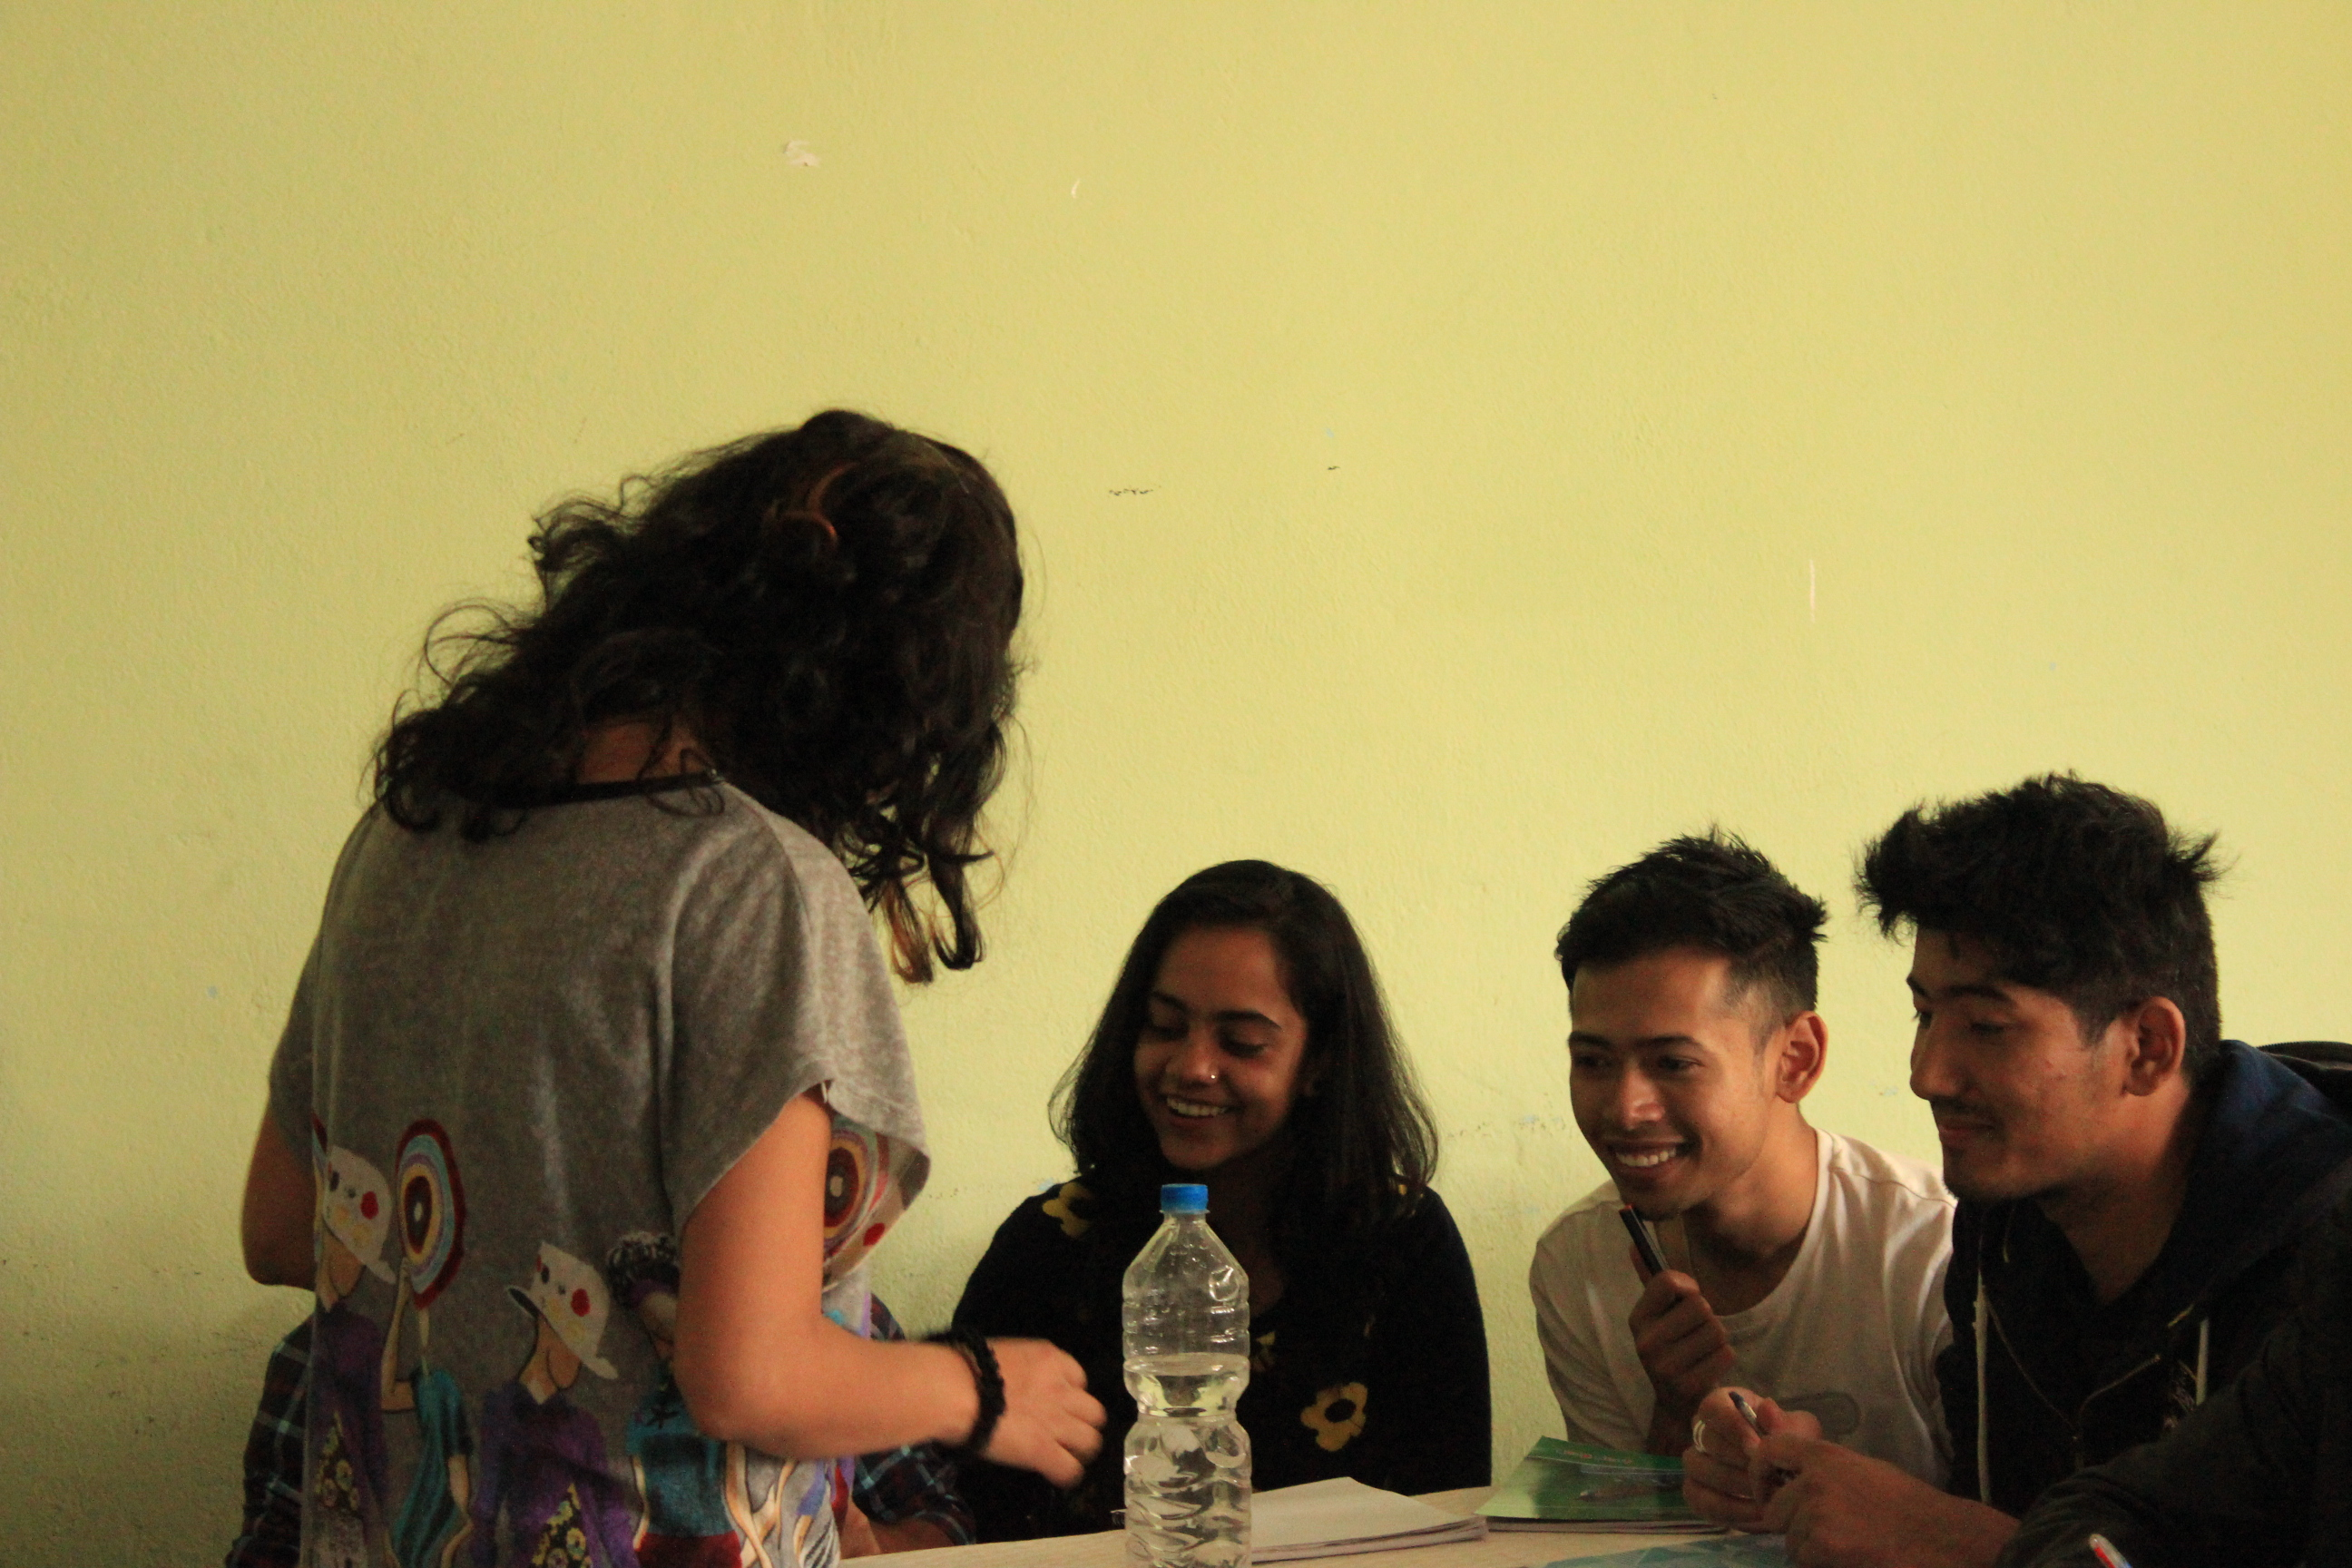 Ujjwala talks to Santwana, Sasit and Nischal - some of our older participants in the intensive workshops in Kavre.